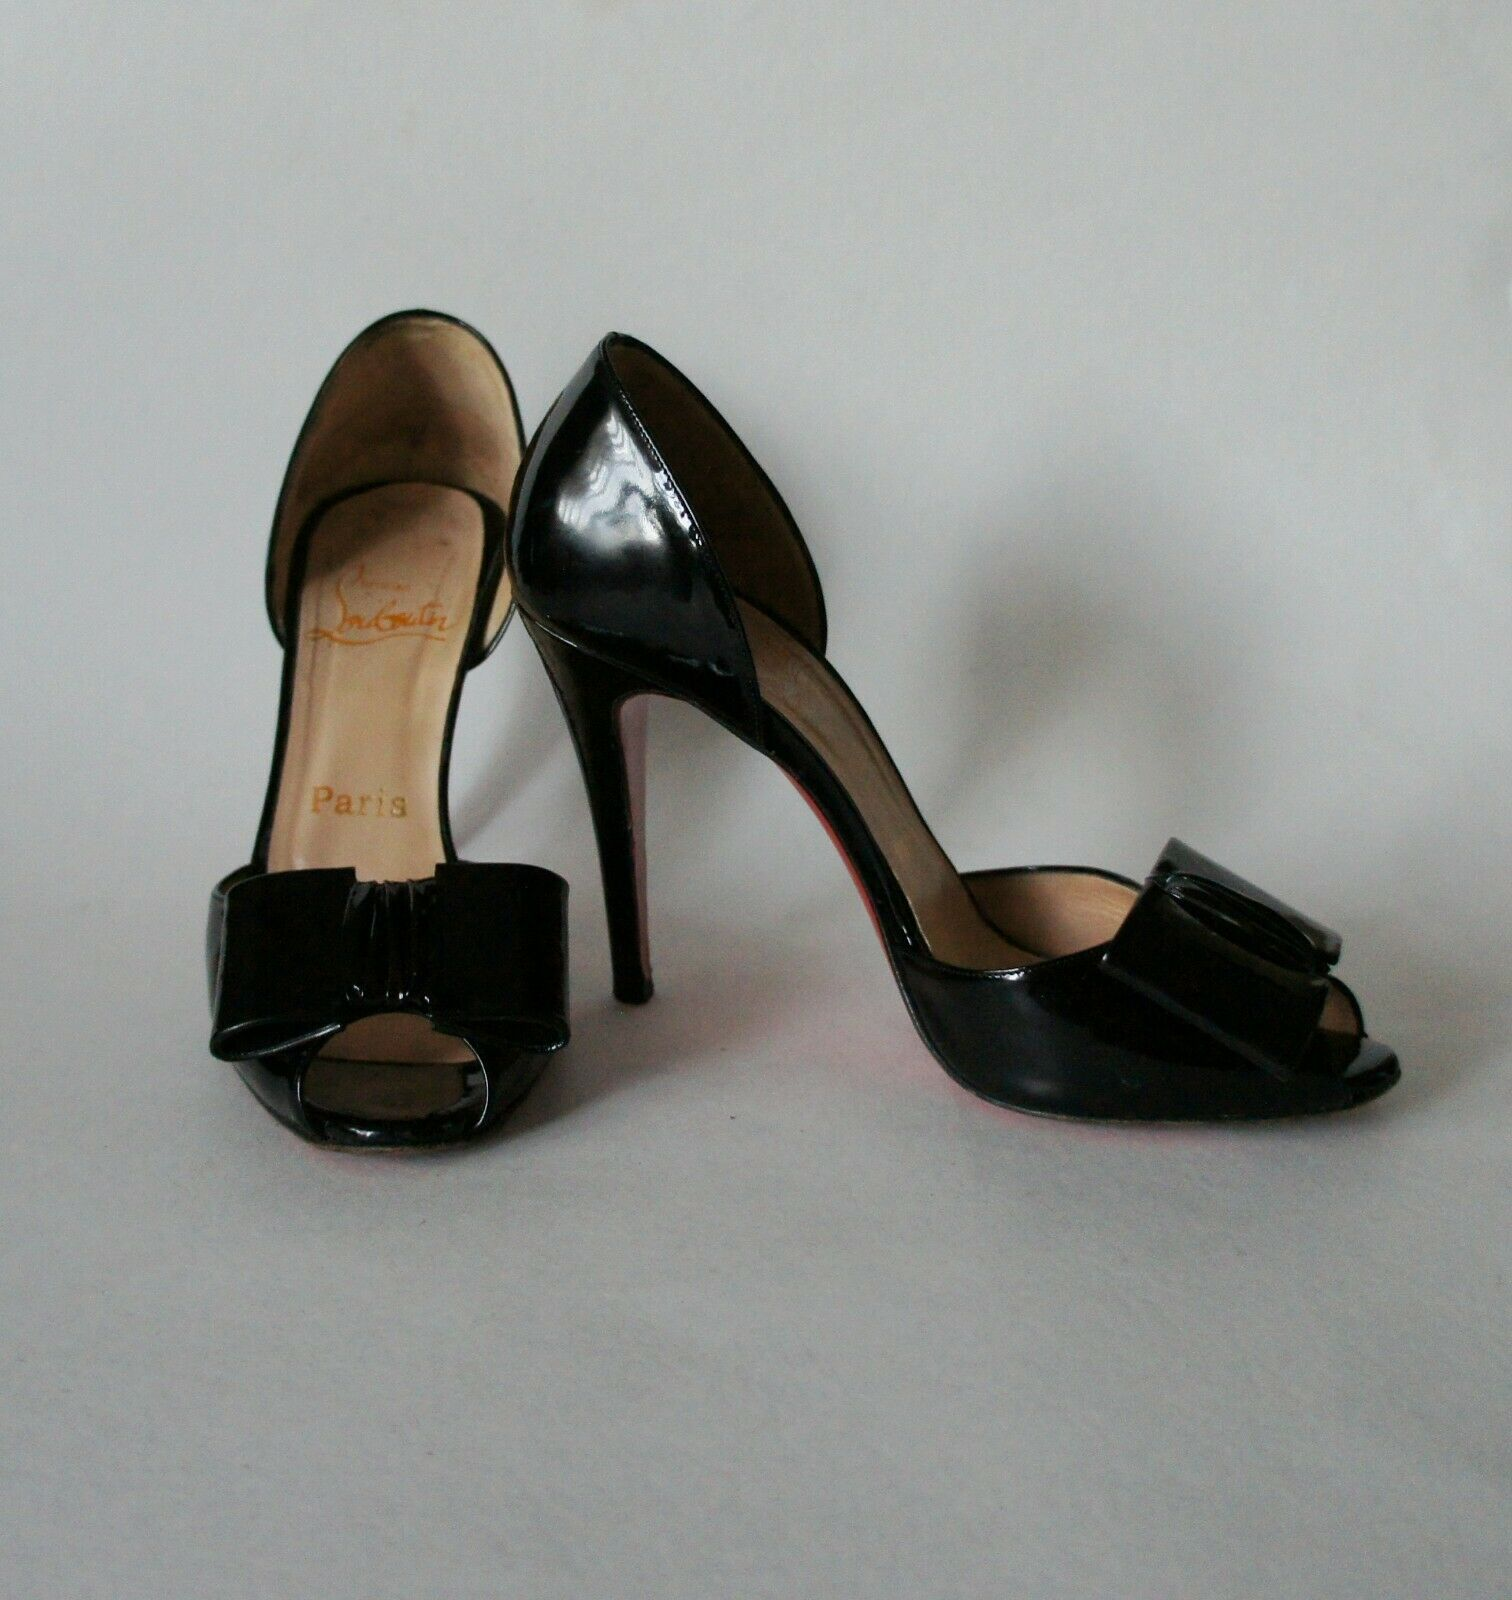 Auth CHRISTIAN LOUBOUTIN Black Patent Leather Pumps Size 37